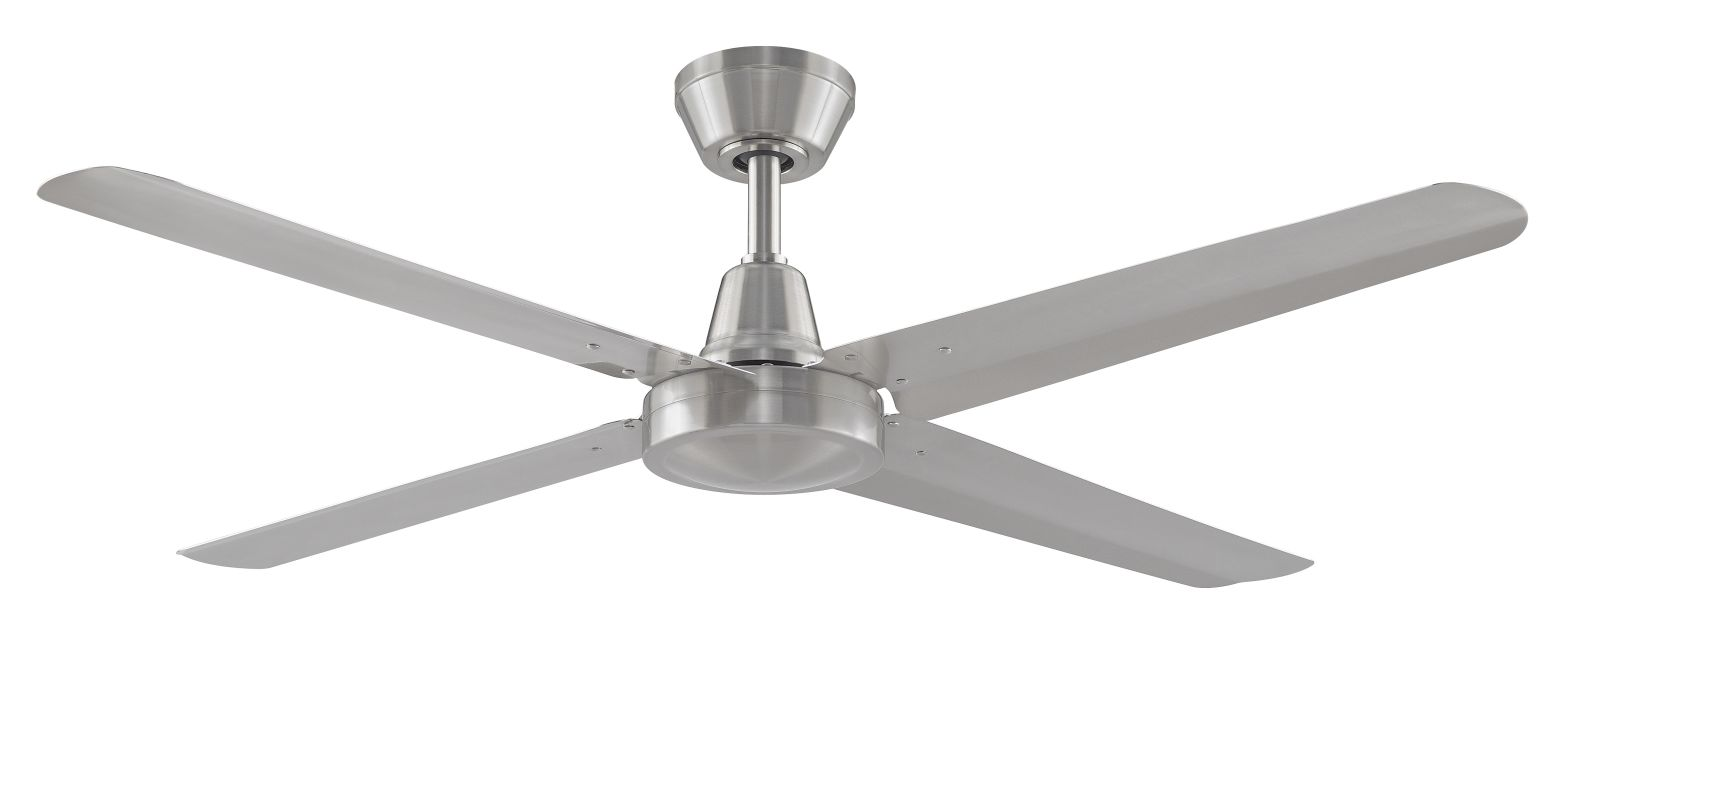 "Fanimation FP6717 54"" Semi-Flush 4 Blade Energy Star Certified Ceiling"